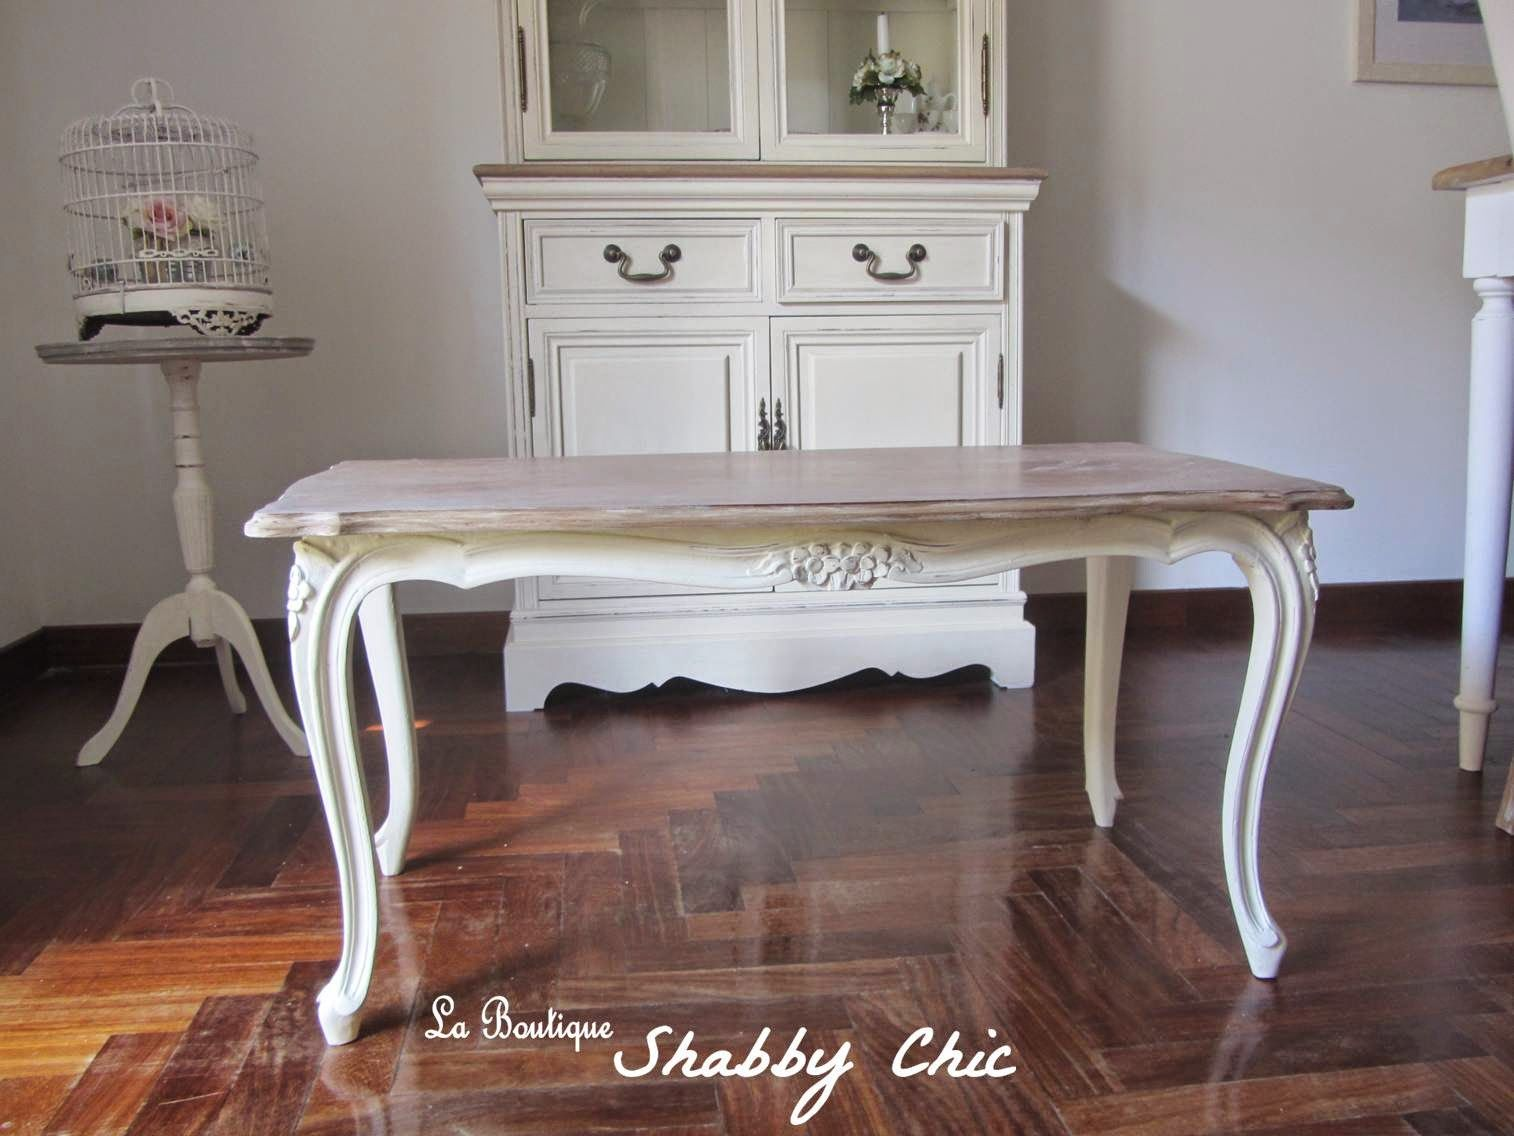 Tavolino Shabby Chic | La Boutique Shabby Chic | Restore furniture ...